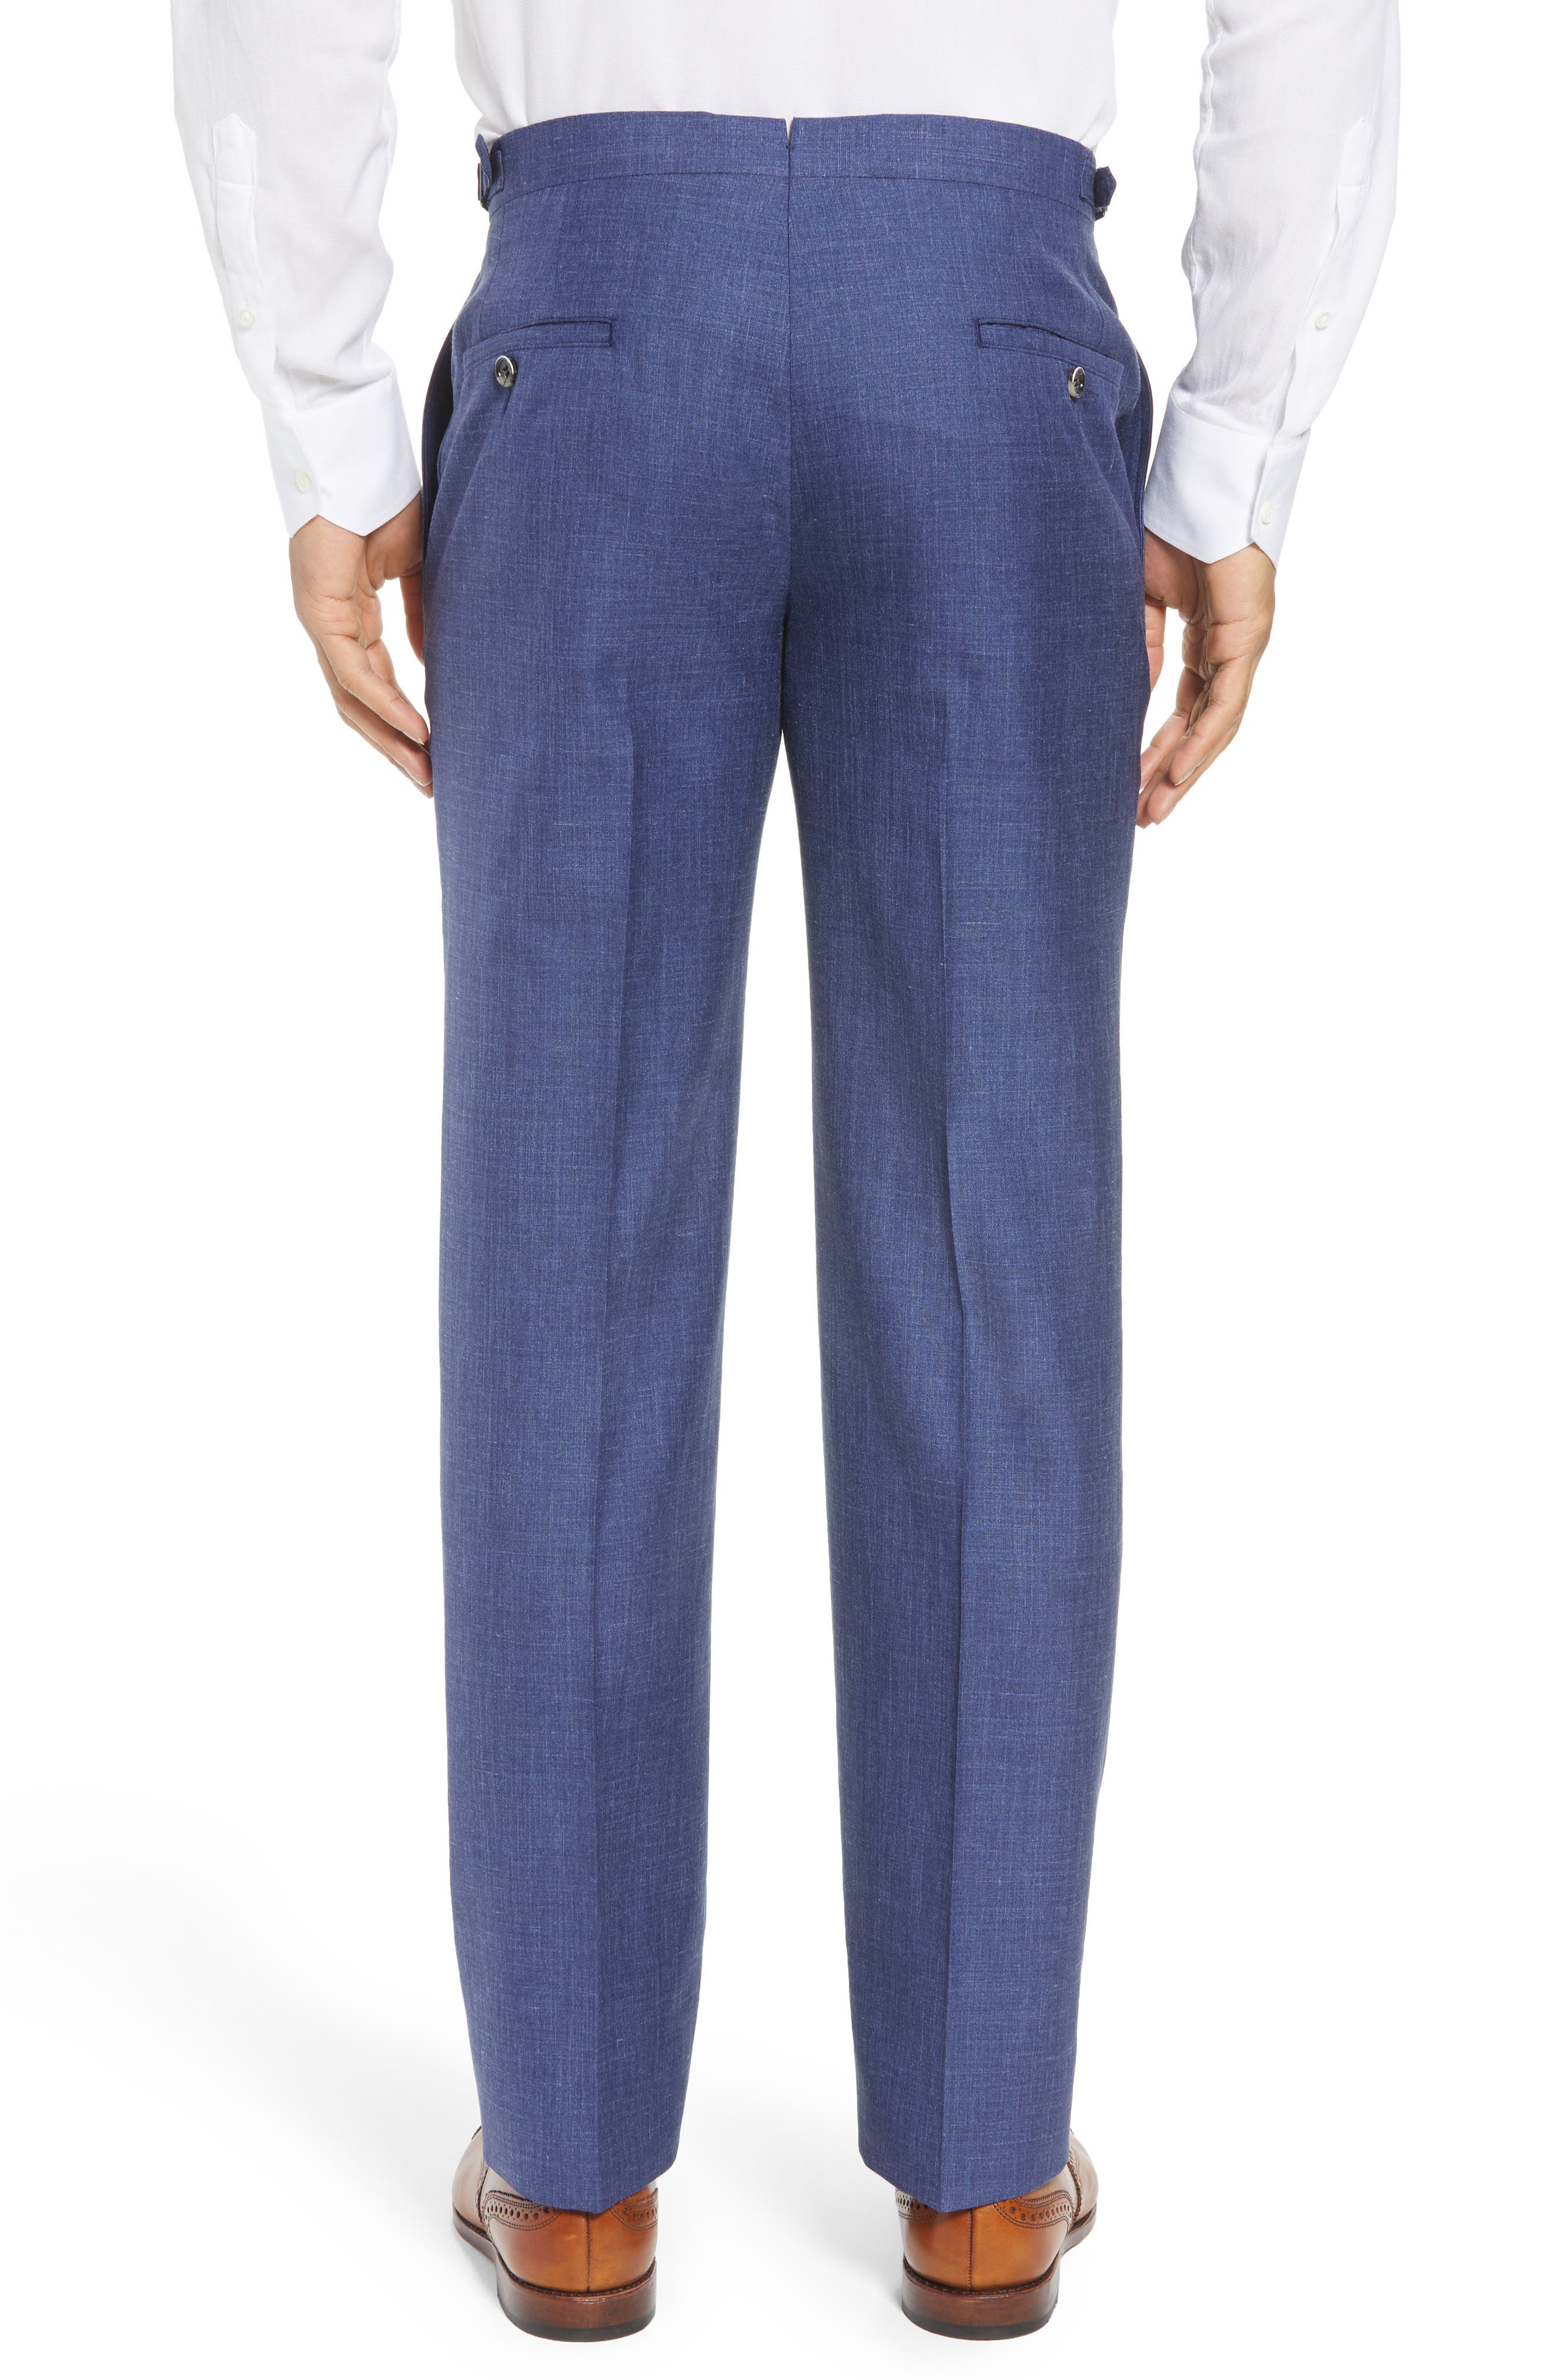 B Fit Flat Front Solid Wool Blend Trousers,                             Alternate thumbnail 2, color,                             BLUE SOLID